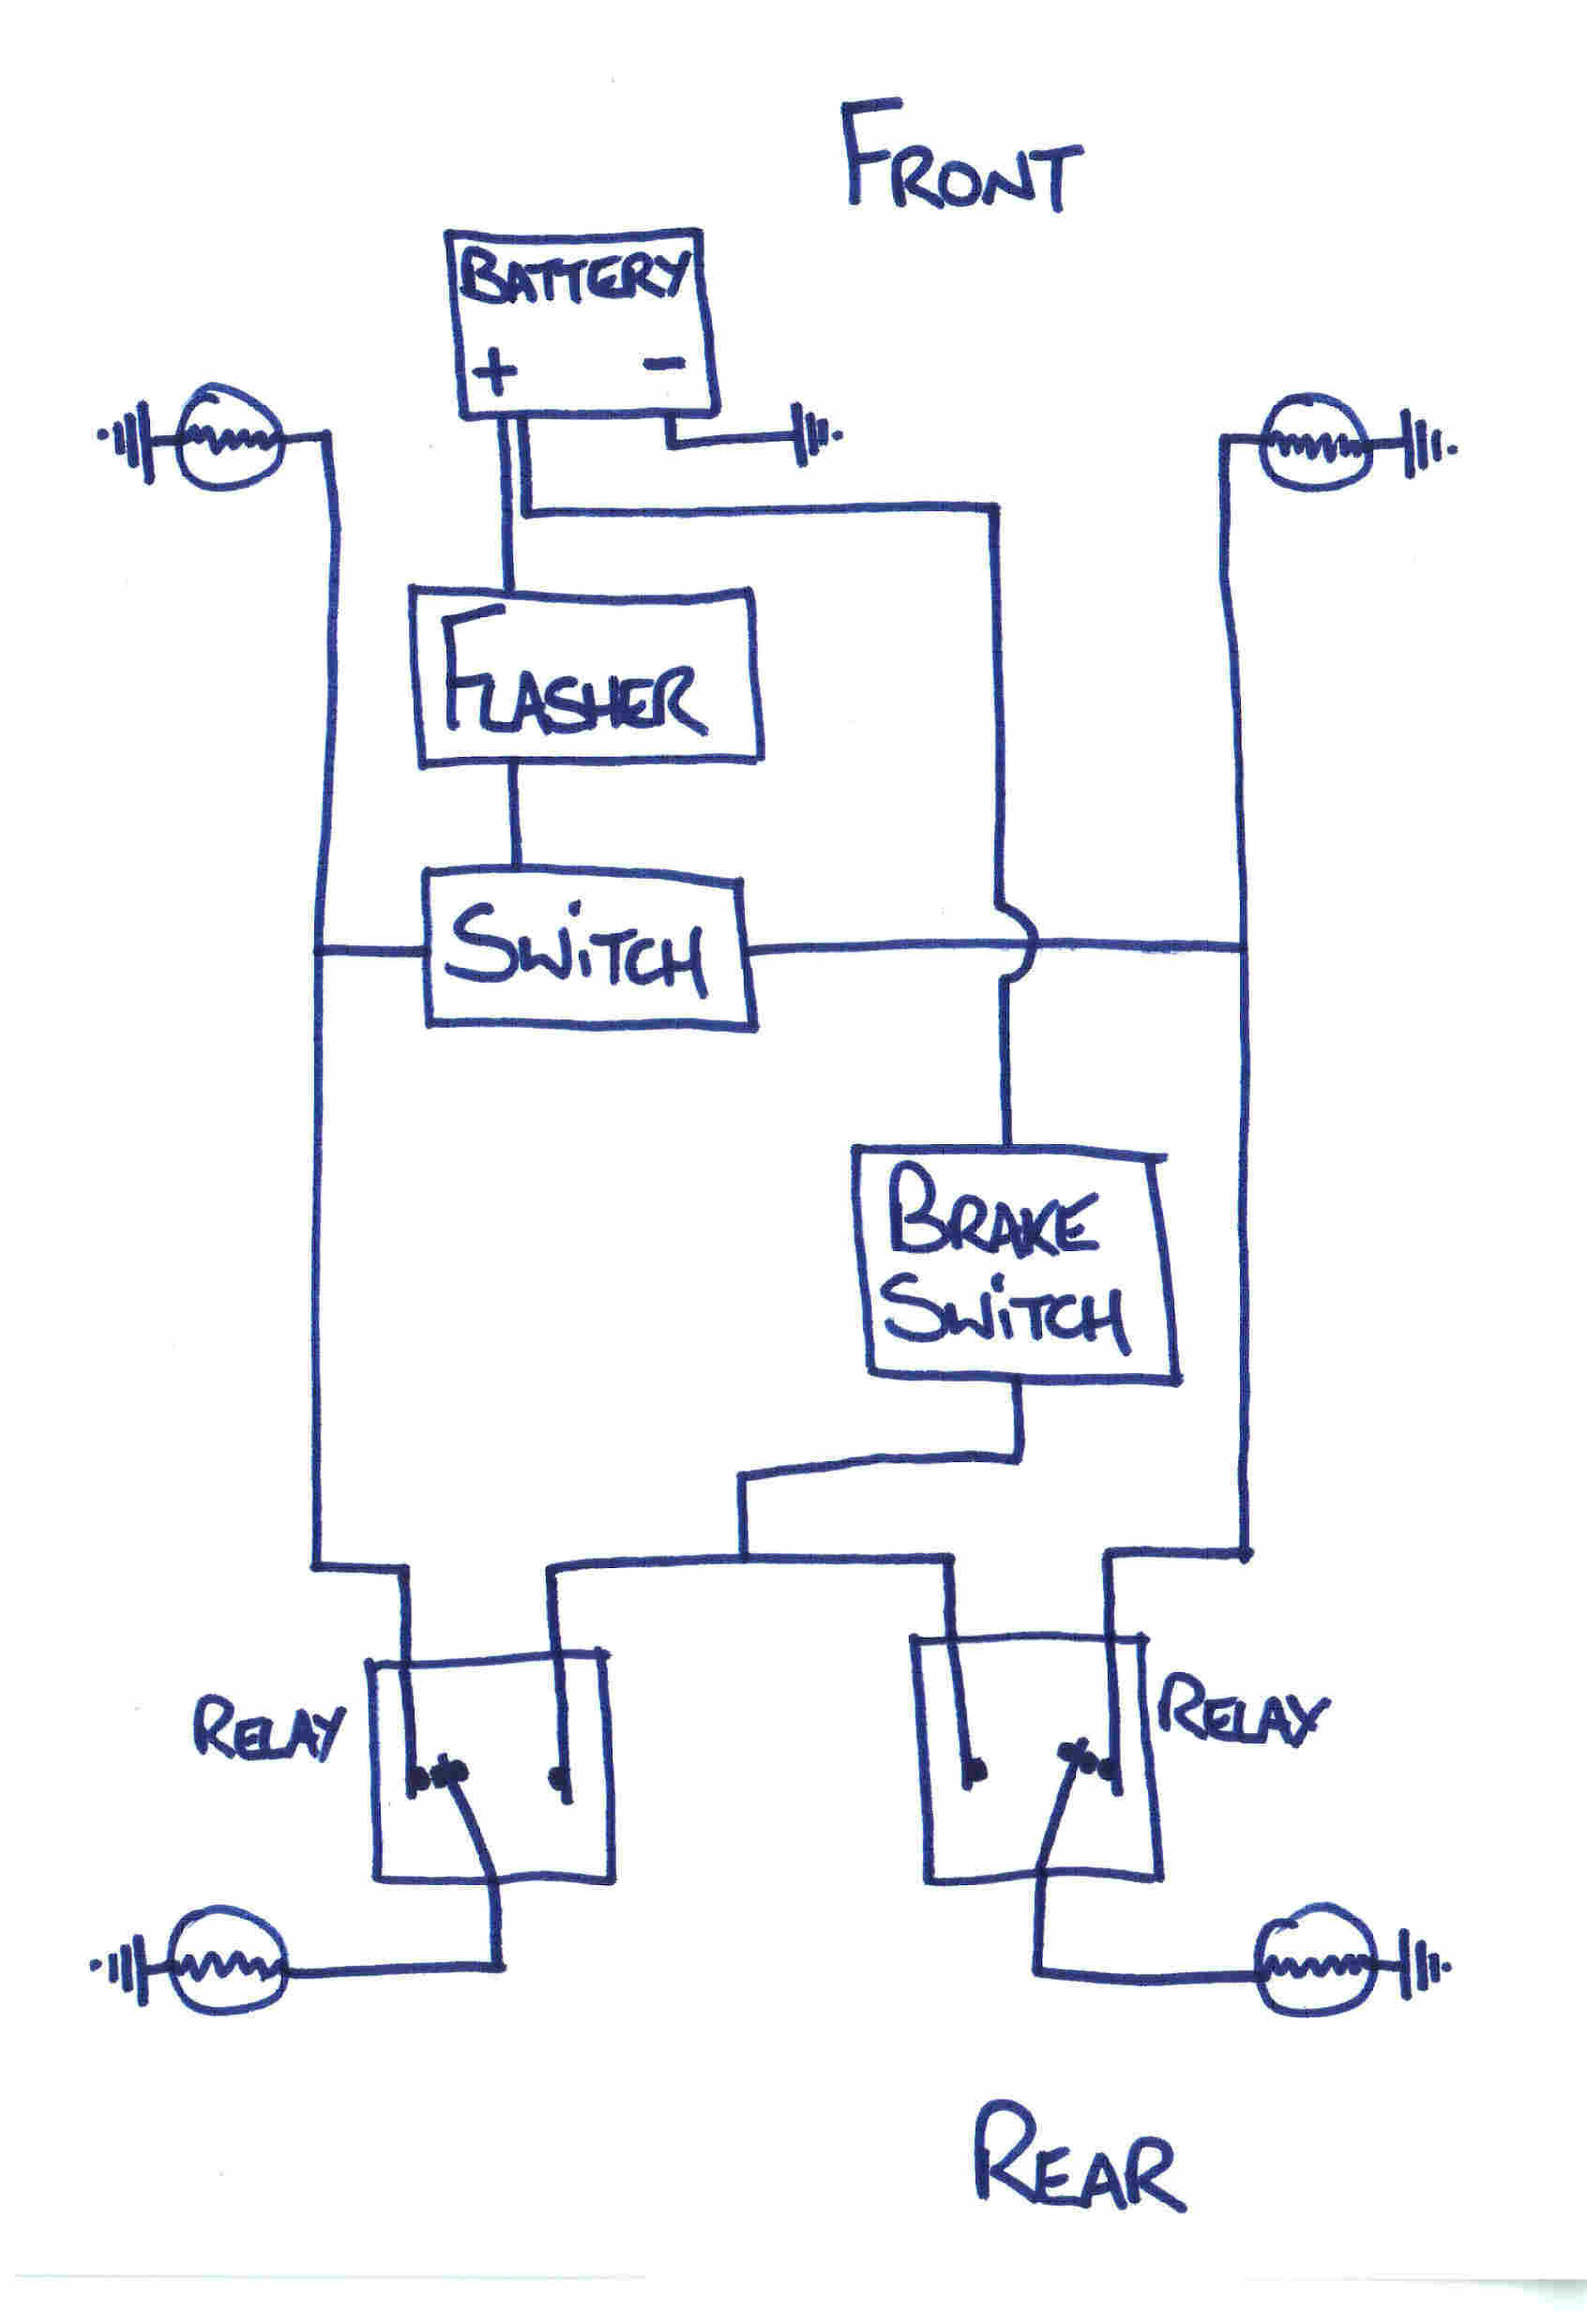 modern flasher circuits if it would be possible to share the brake lamp filament indicators i am no electrician so please excuse the poor diagram and explanation